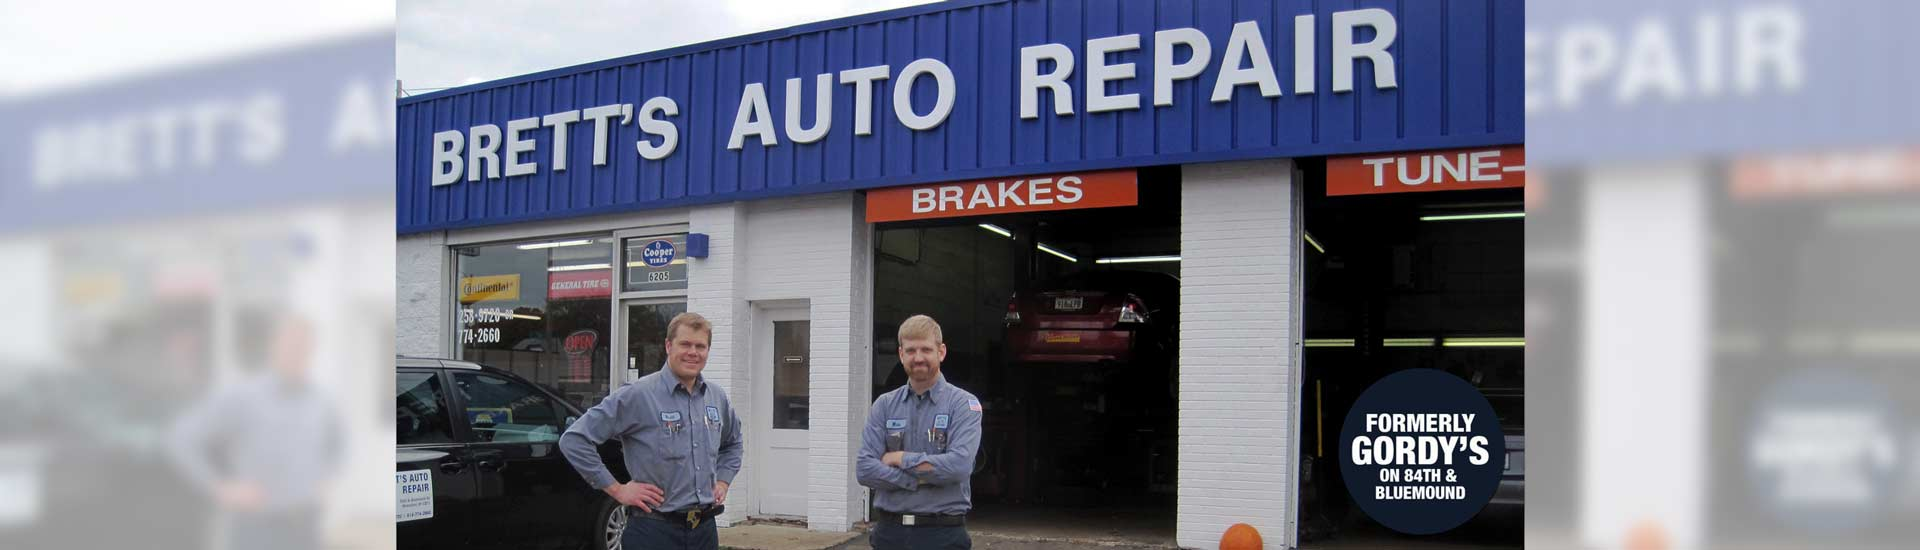 Service For Your Auto Satisfaction Our Customer